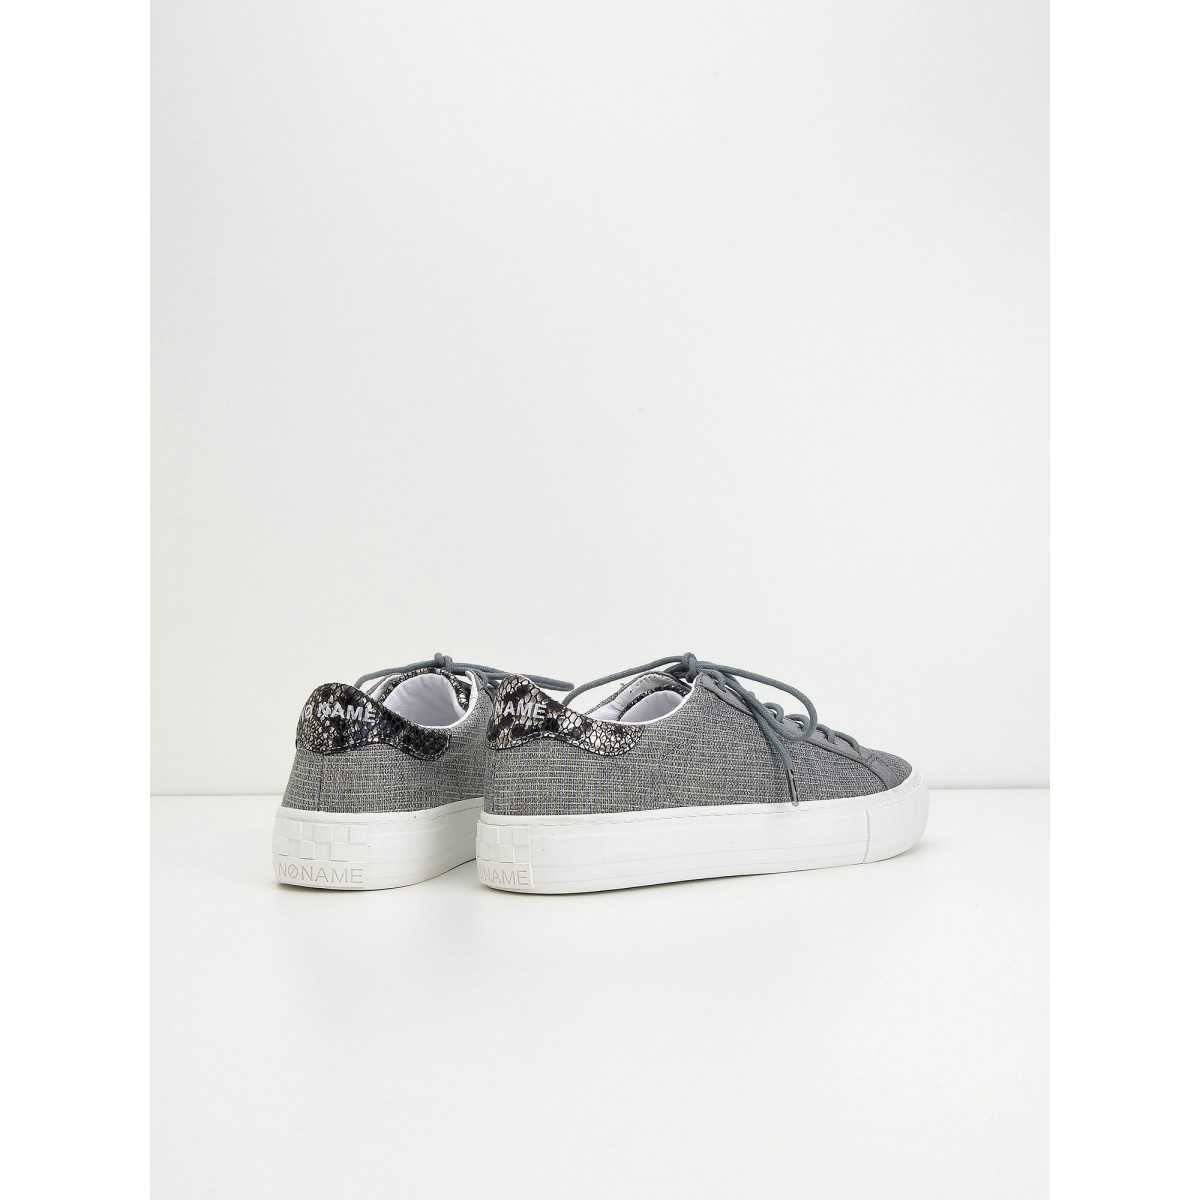 No Name Arcade Sneaker - Fortune - Grey